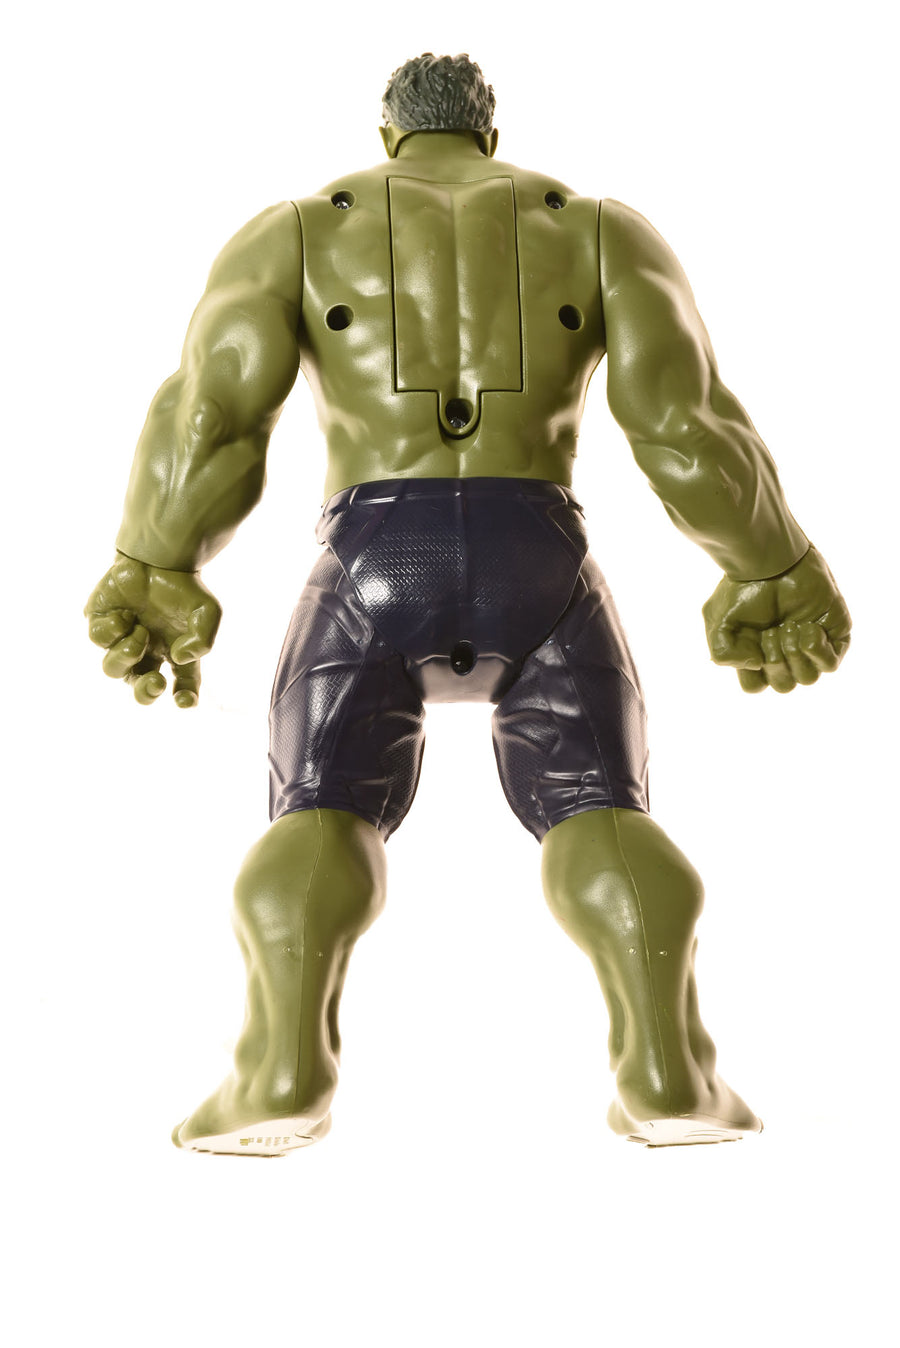 Hulk Action Figure By Hasbro